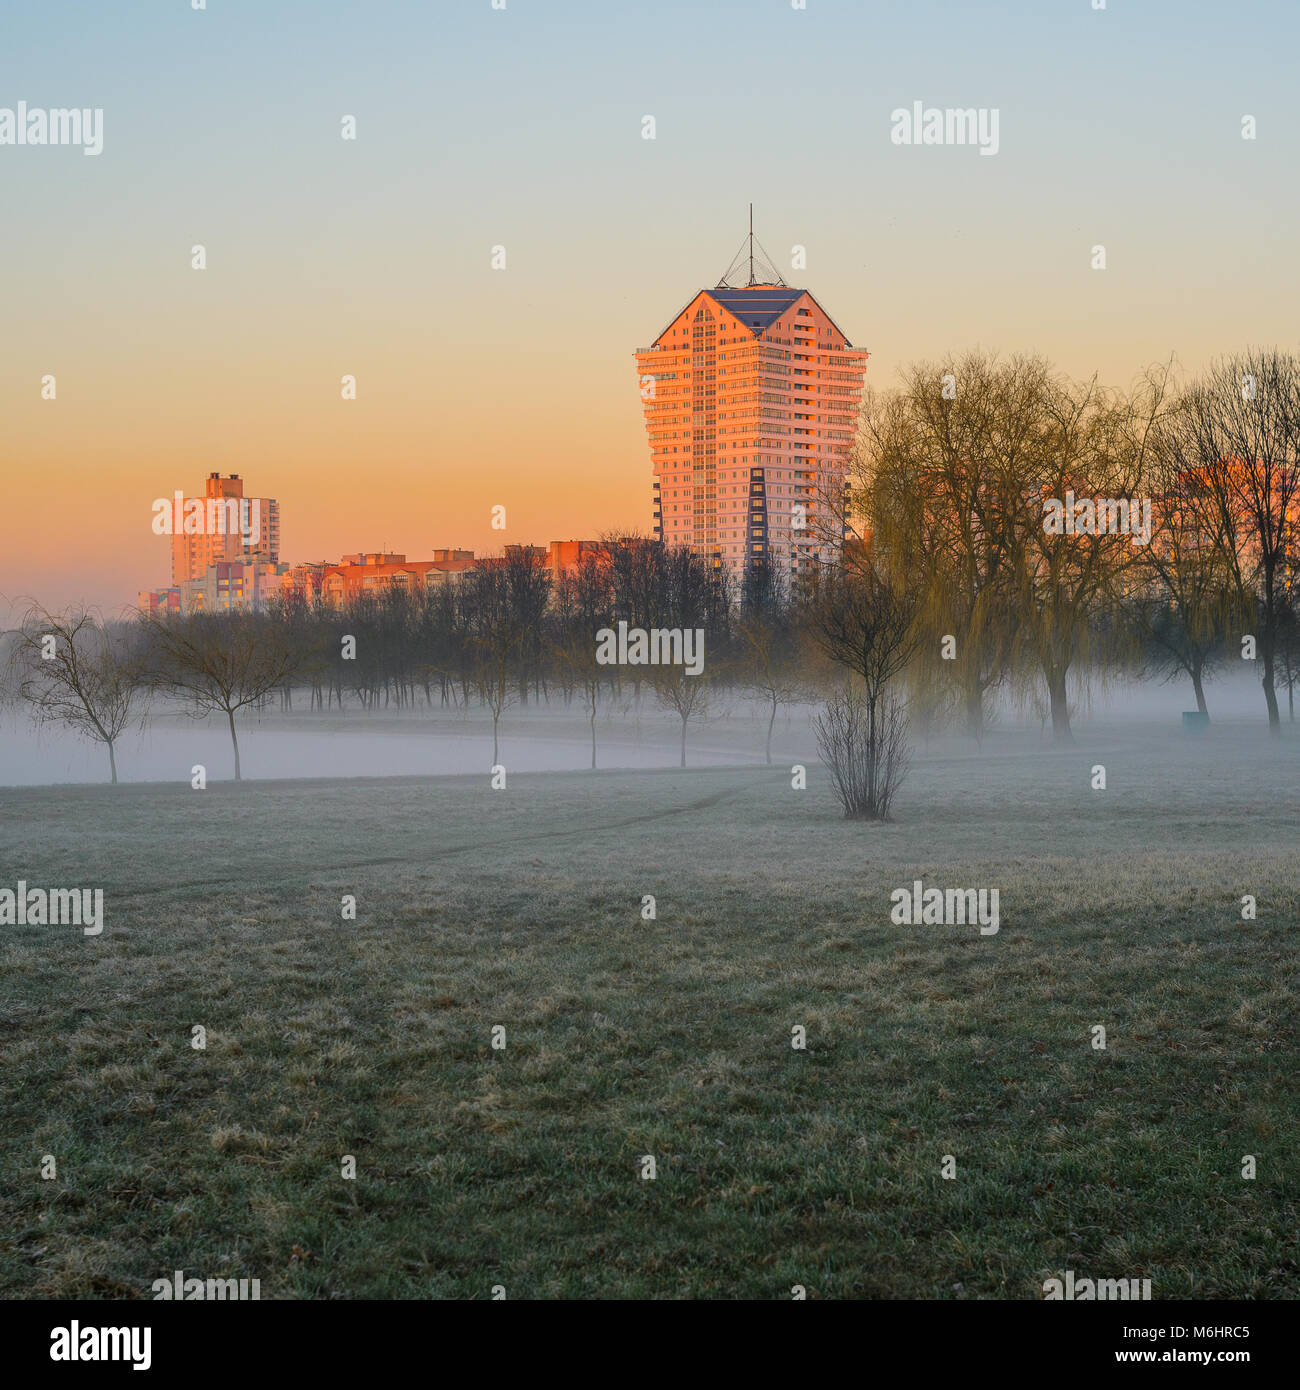 Belarus, Minsk - April 4, 2017: landscape of the Writers' Park in the Morning Mist, View of the Residential - Stock Image